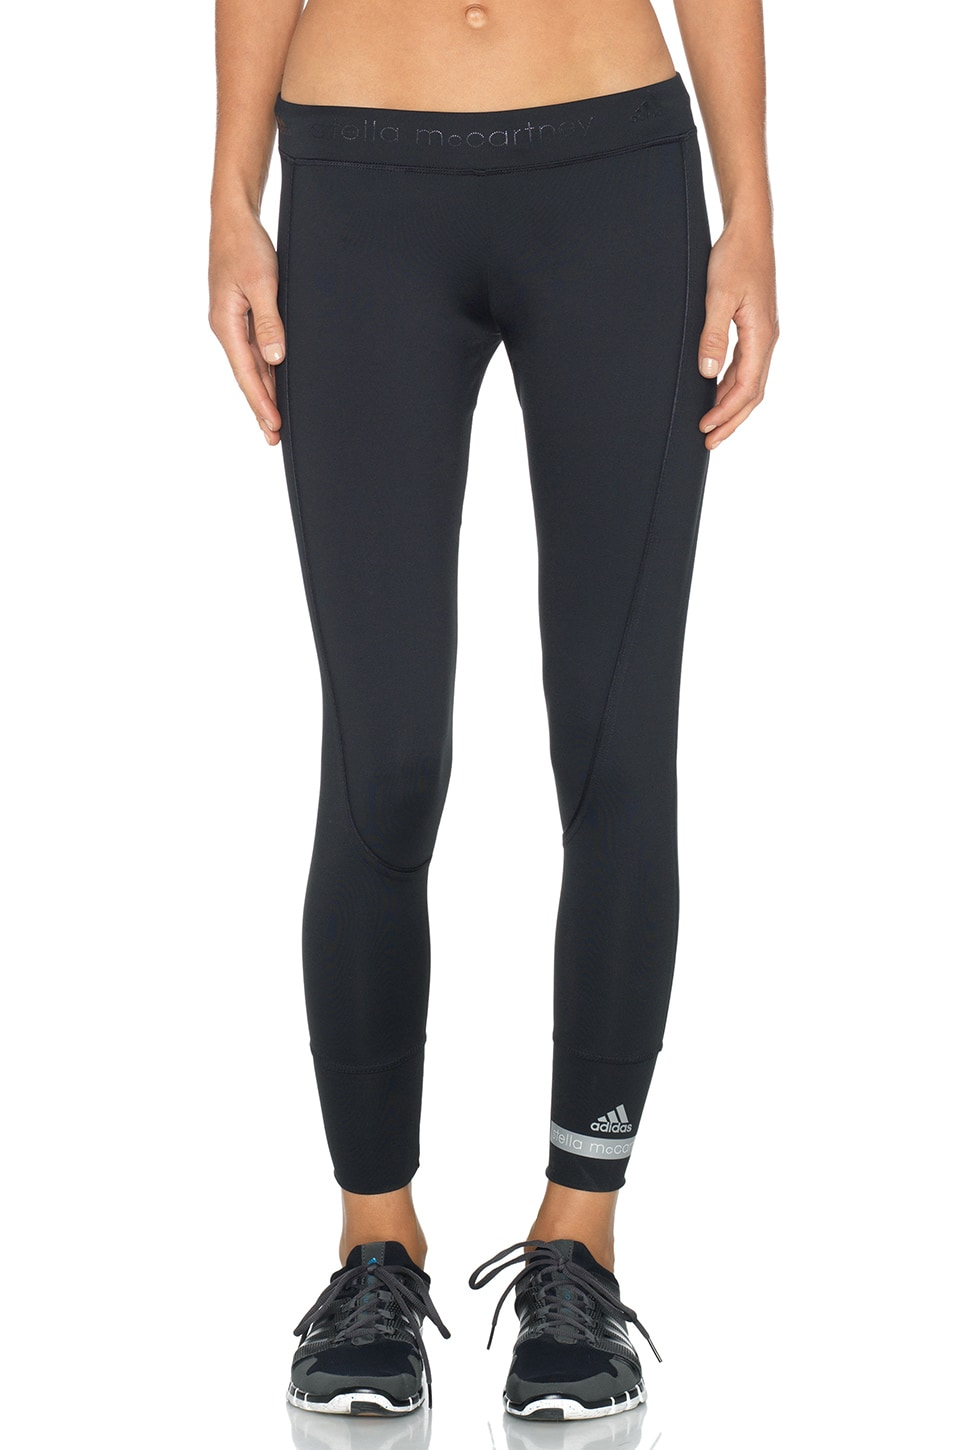 adidas by Stella McCartney The Essential 7/8 Tight in Black